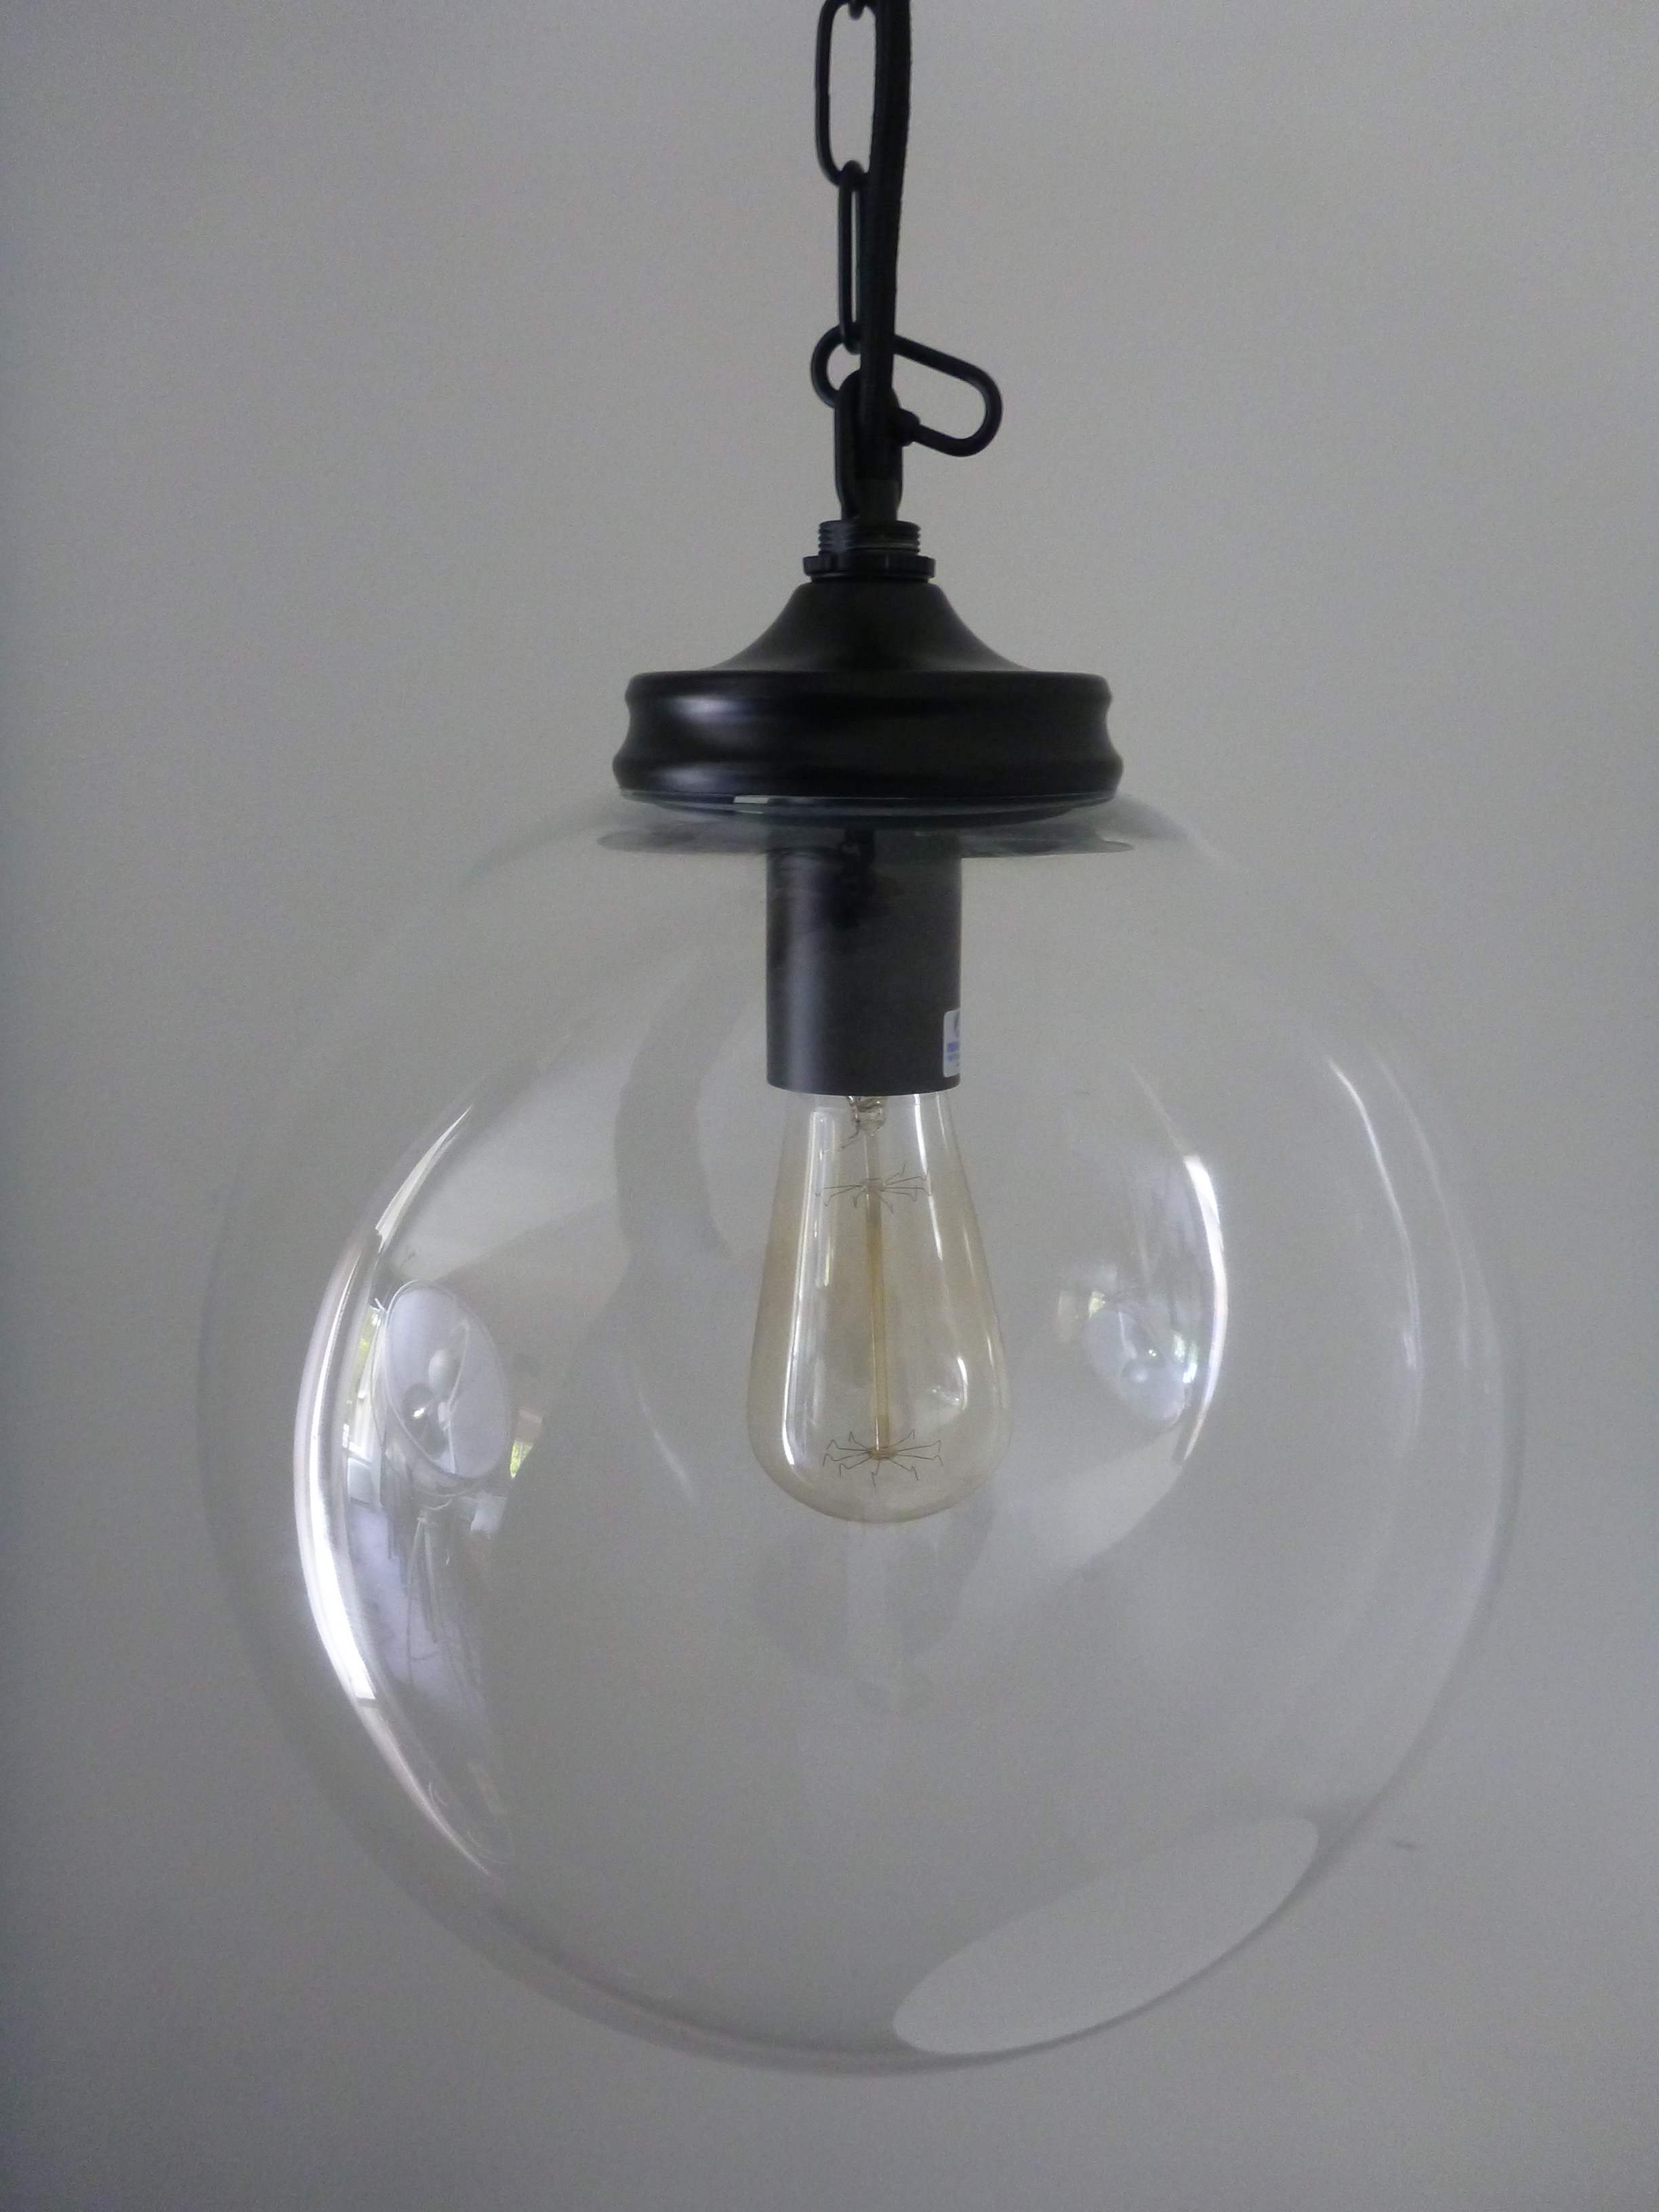 lights pendant simple lightclear bedroom clicking kitchen magnifying or ceilings appealing light clear ceiling fixtures glass pen vintage lighting